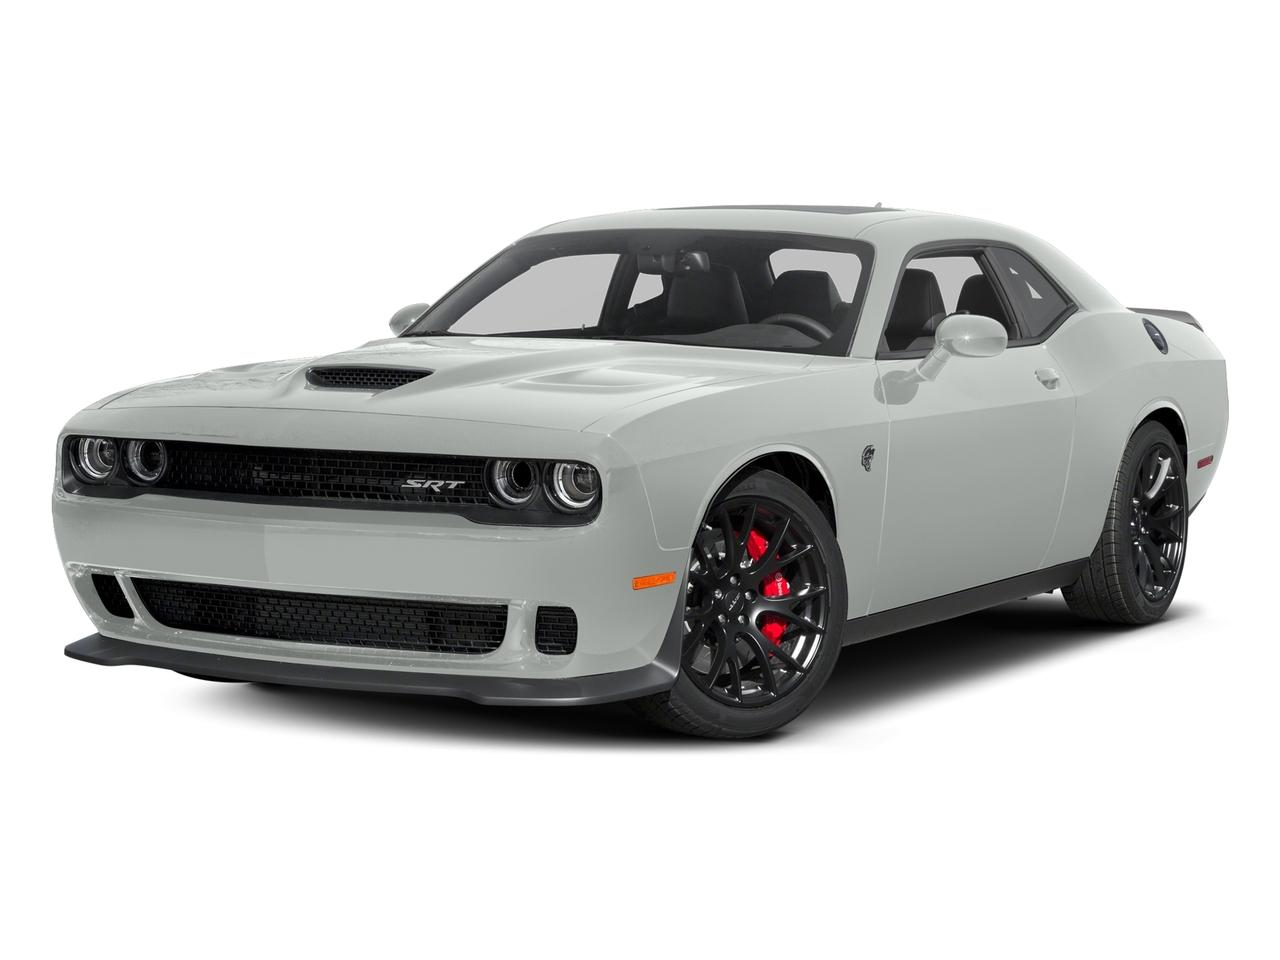 2016 Dodge Challenger Vehicle Photo in King George, VA 22485